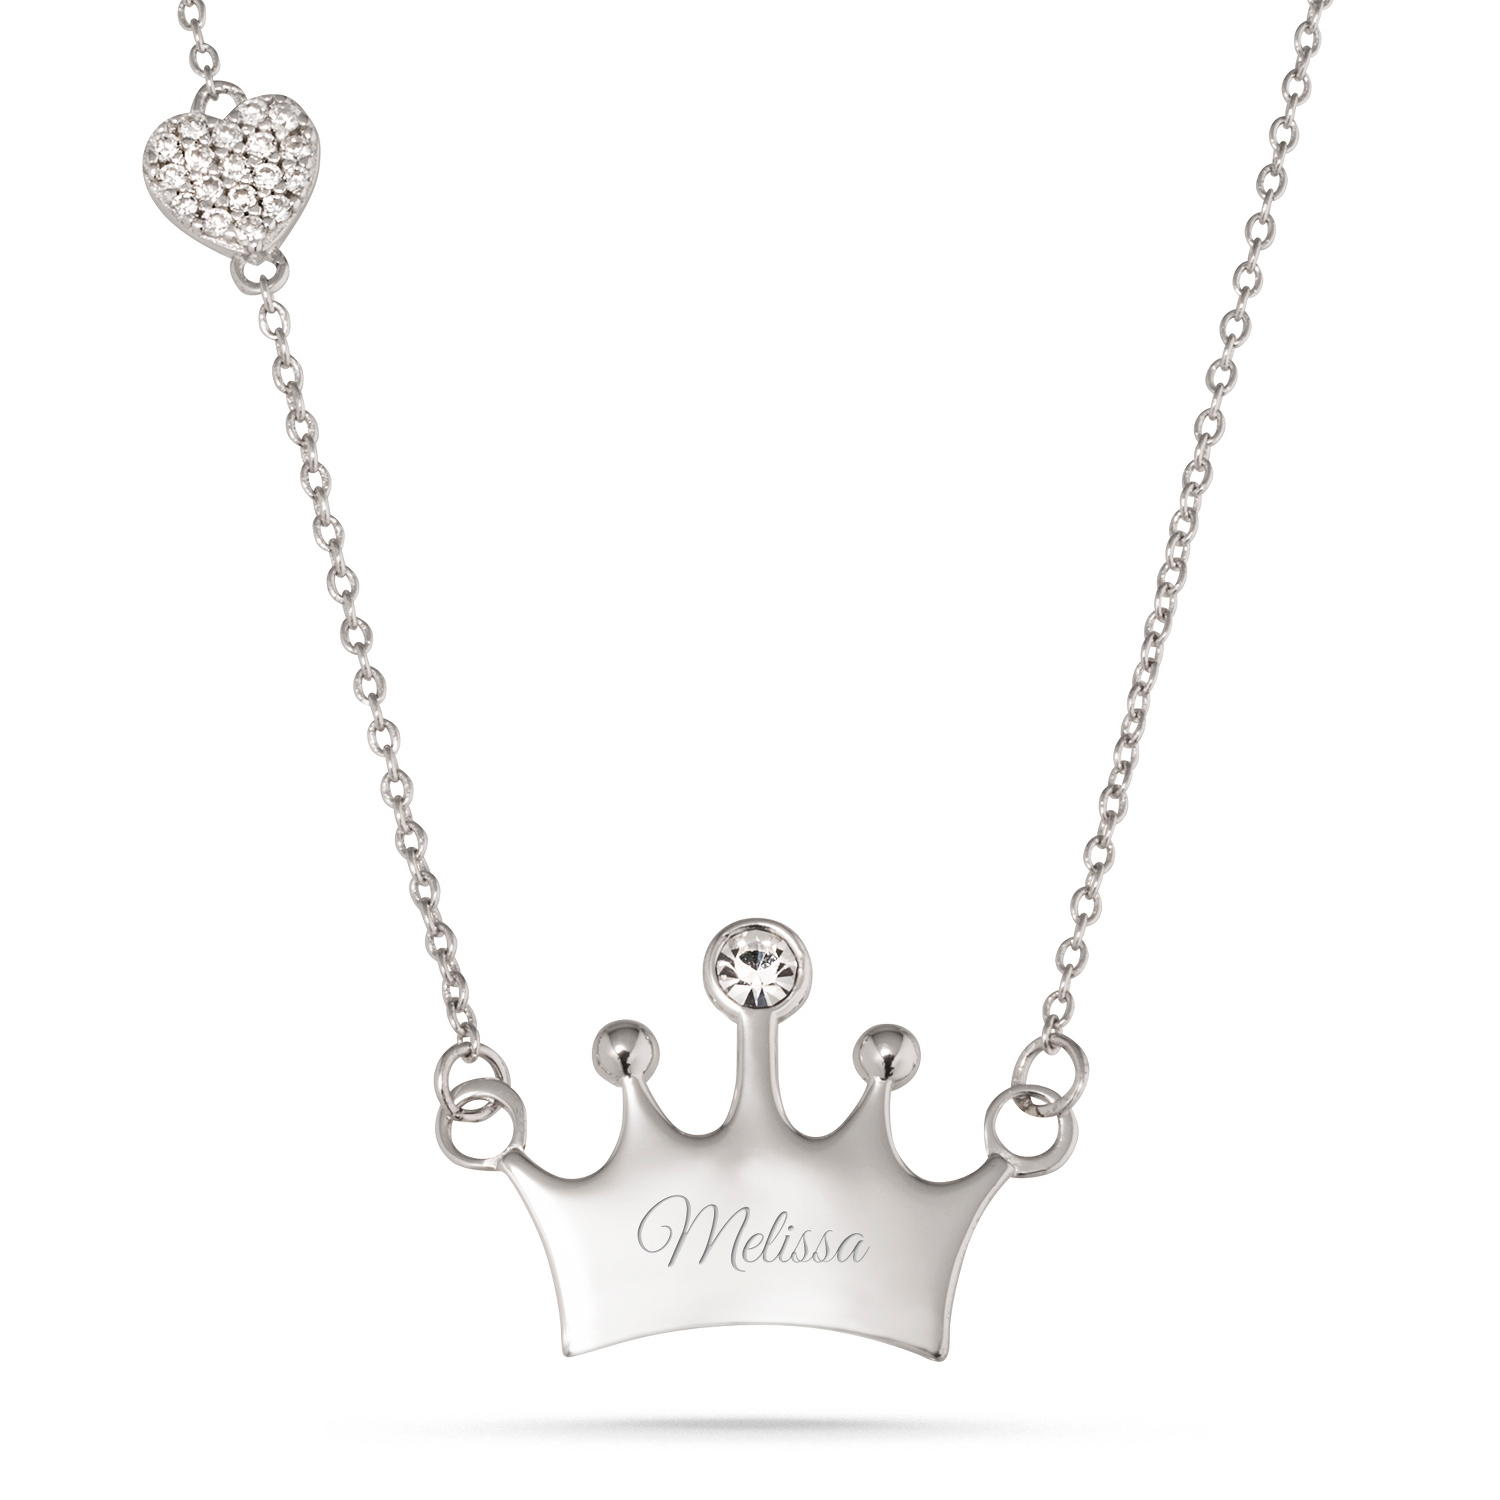 pendant product necklace dee king products image crown bijoux store